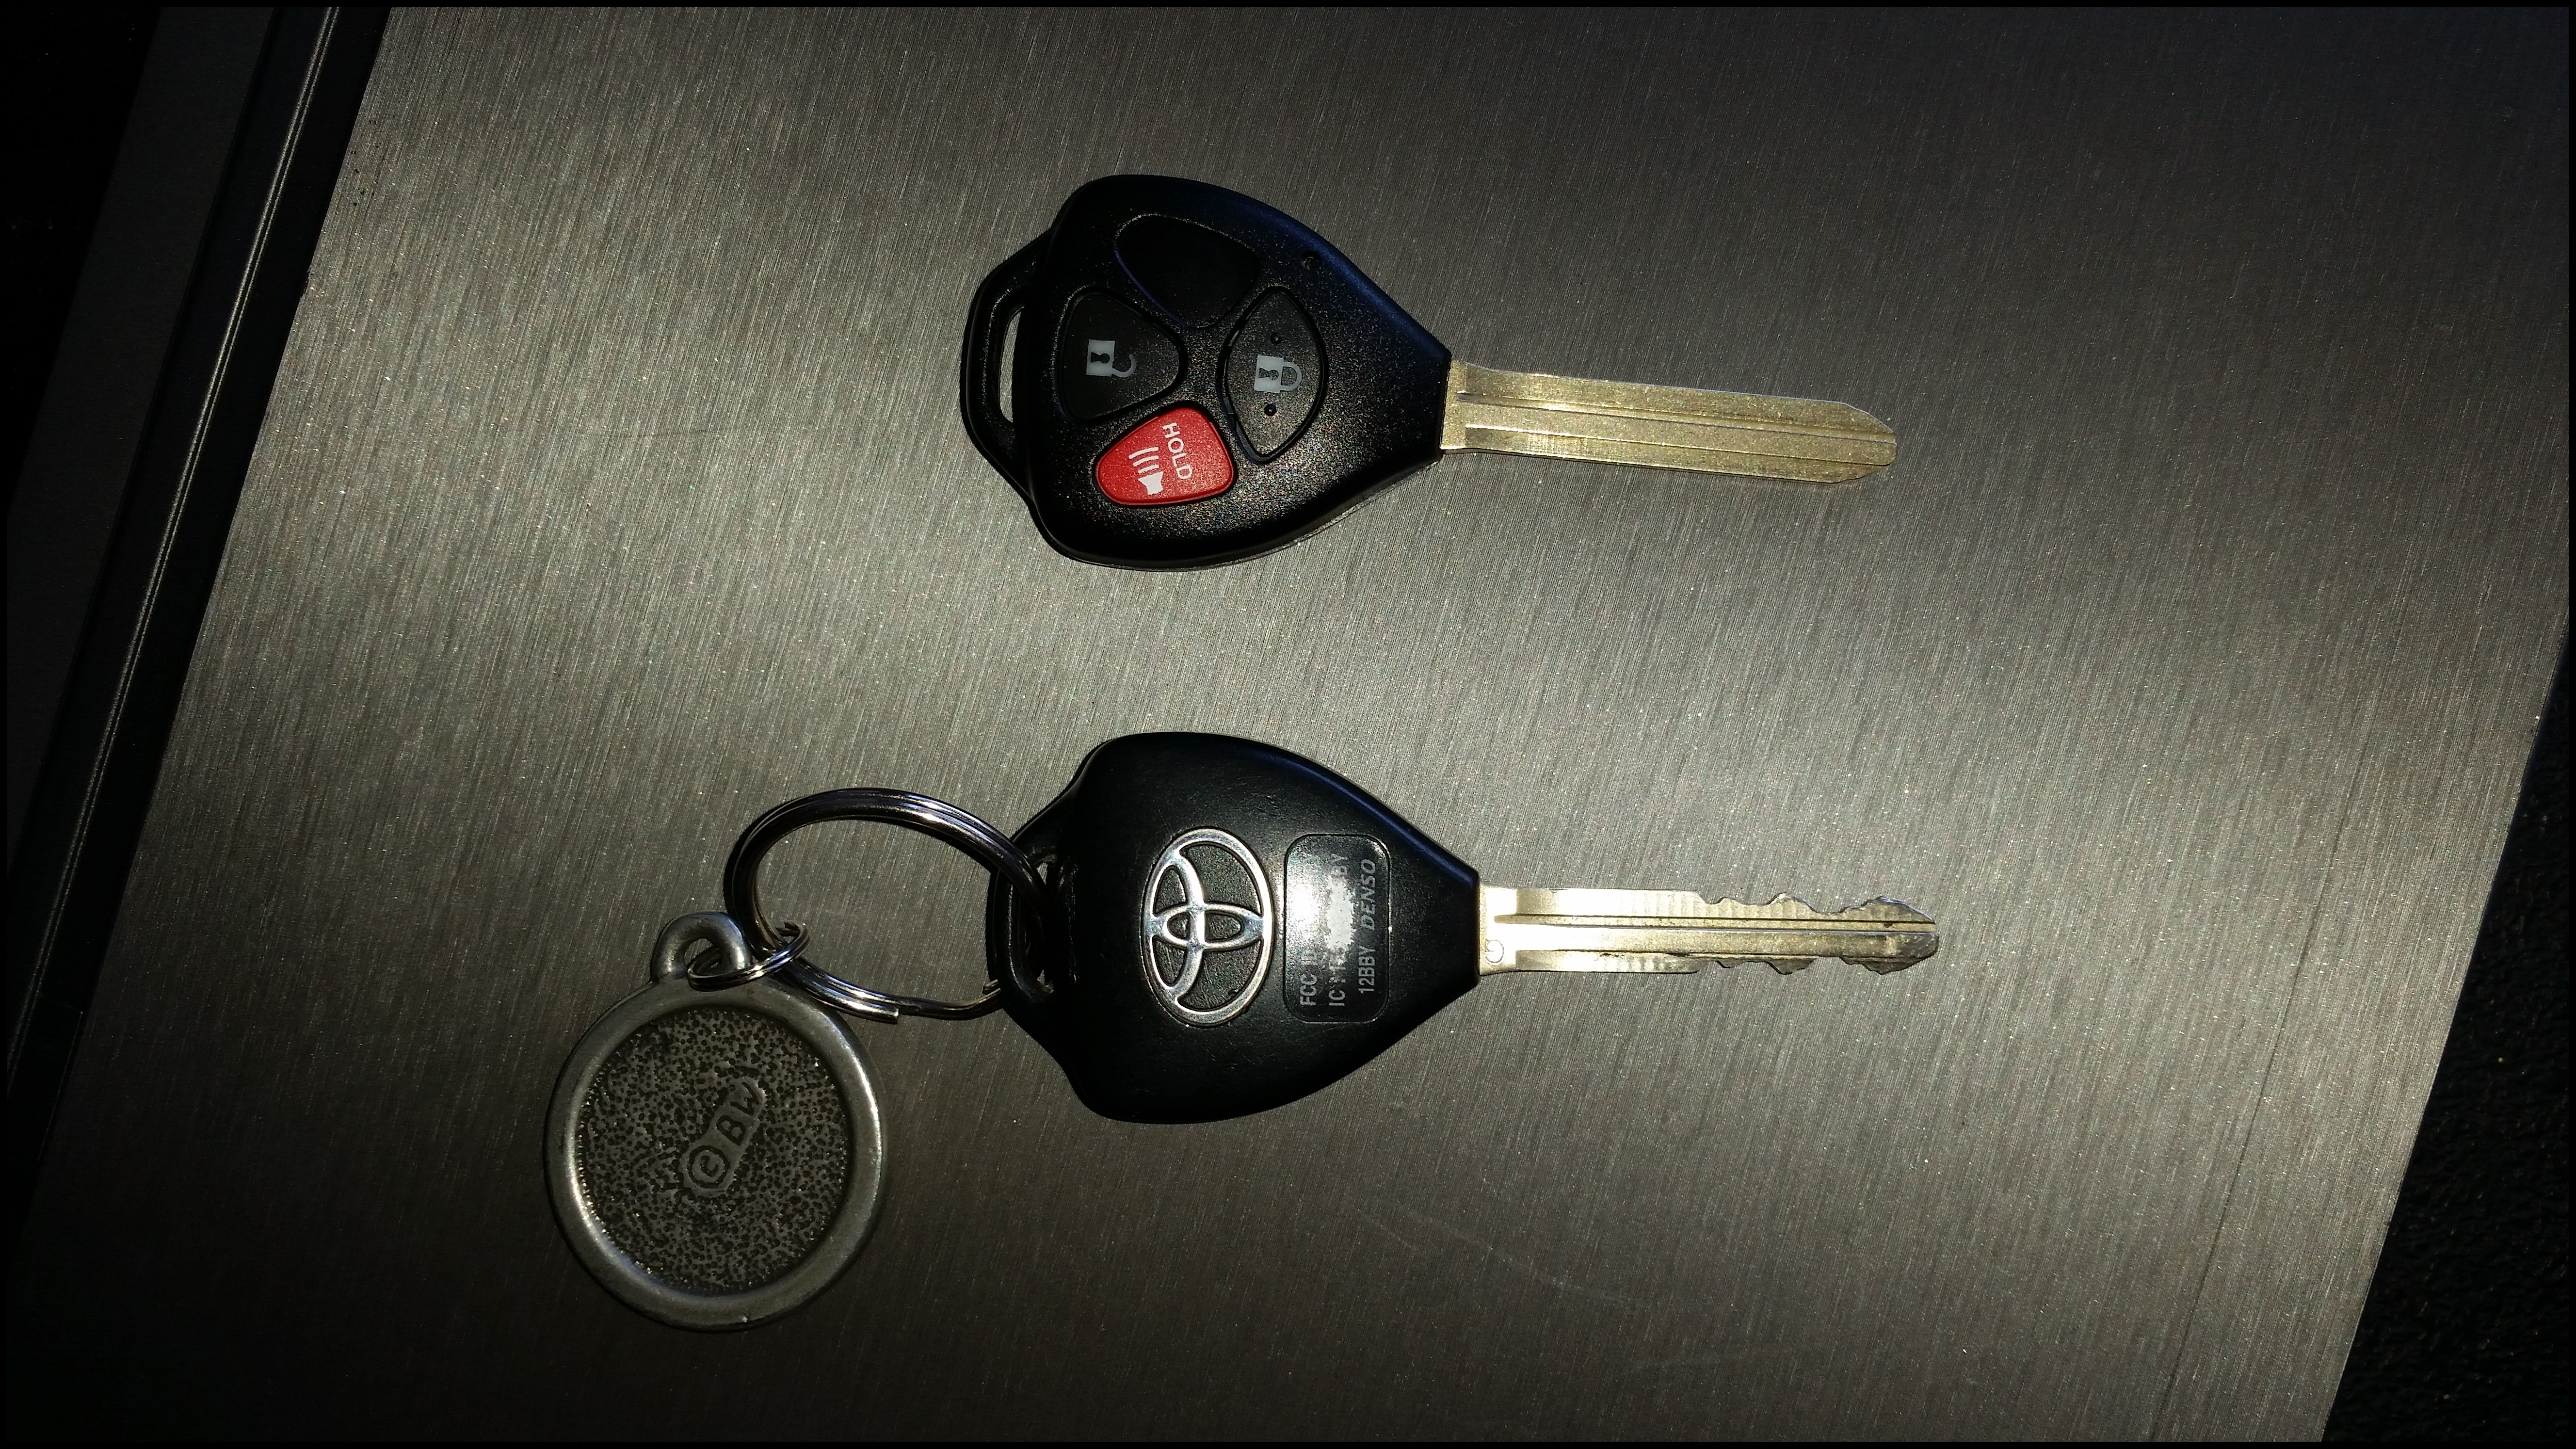 Key replacement and programming on 2013 Toyota Yaris